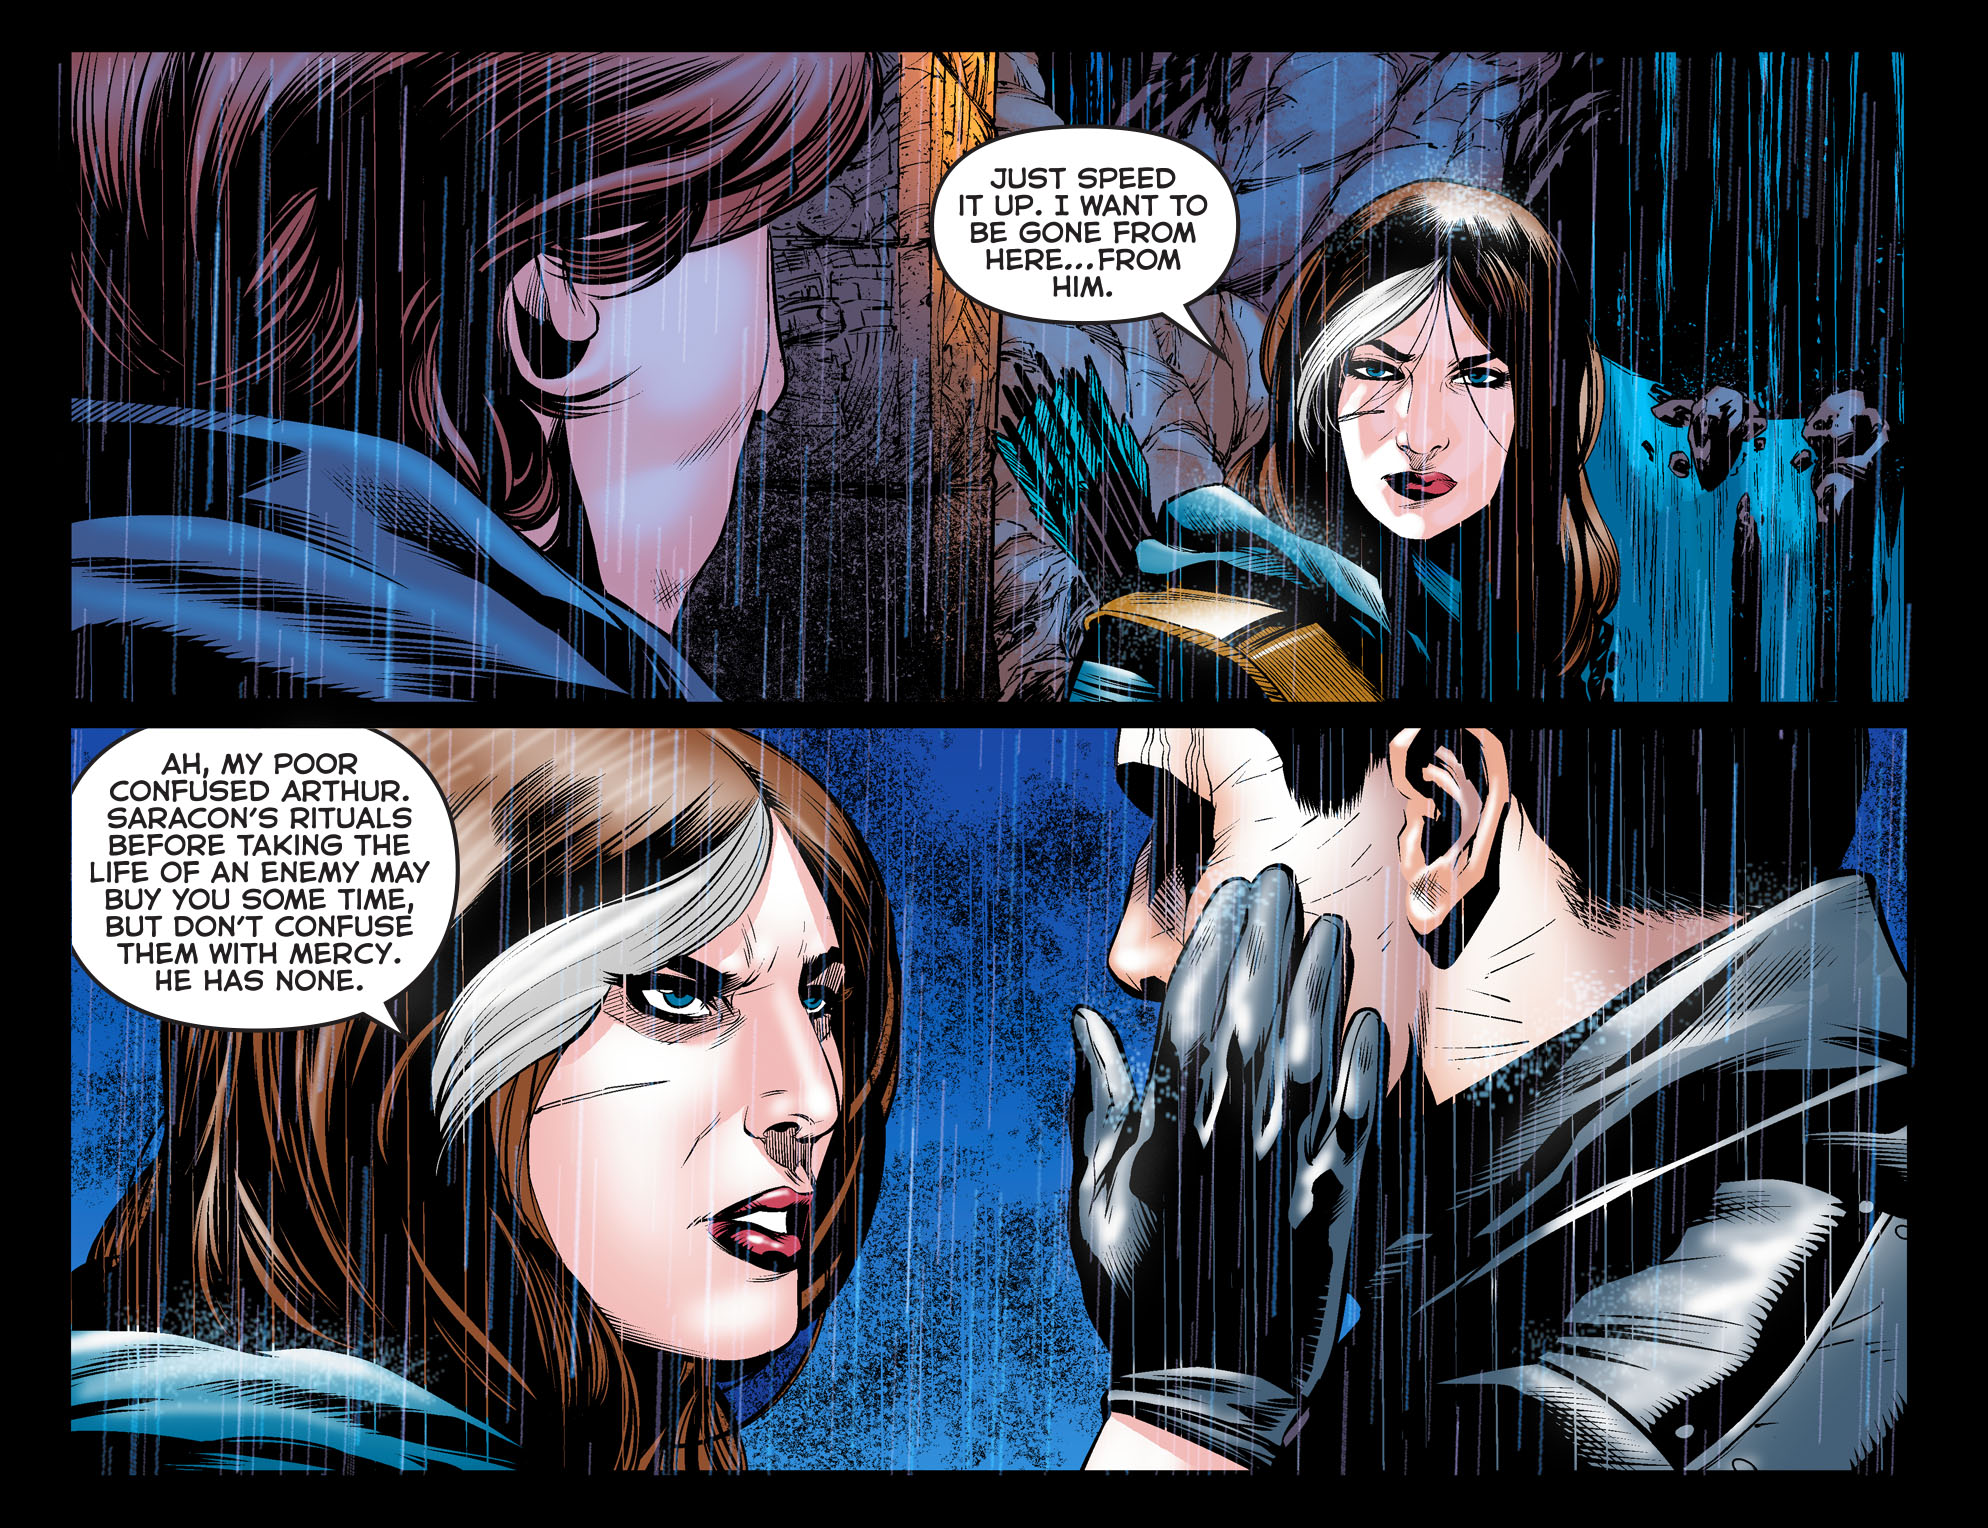 ARROW: DARK ARCHER Chapter 6 panel 6